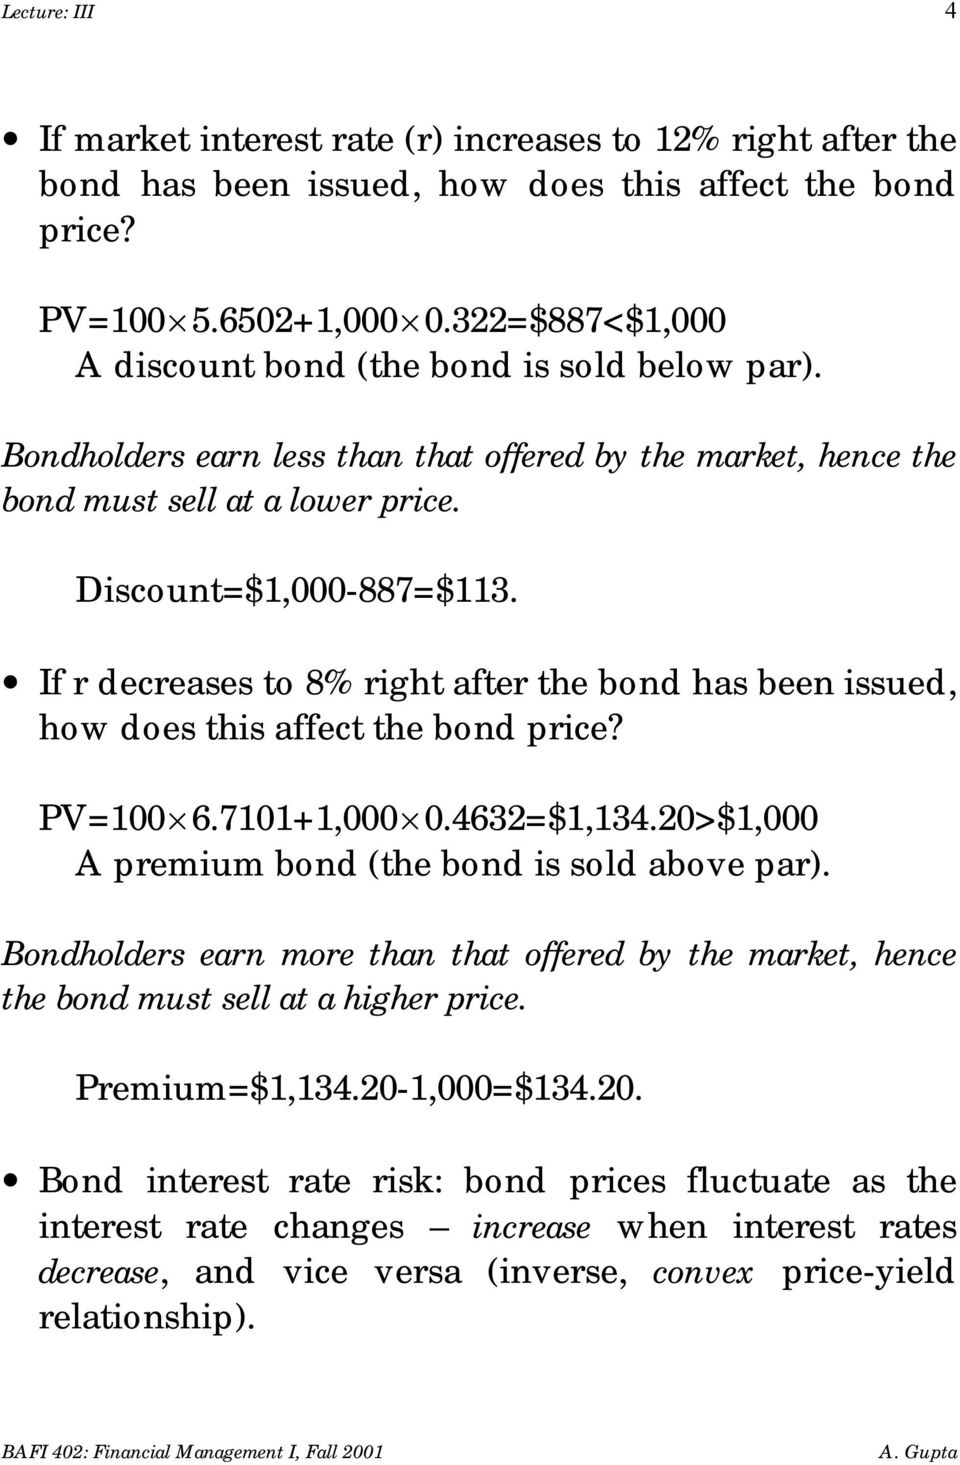 If r decreases to 8% right after the bond has been issued, how does this affect the bond price? PV=100 6.7101+1,000 0.4632=$1,134.20>$1,000 A premium bond (the bond is sold above par).